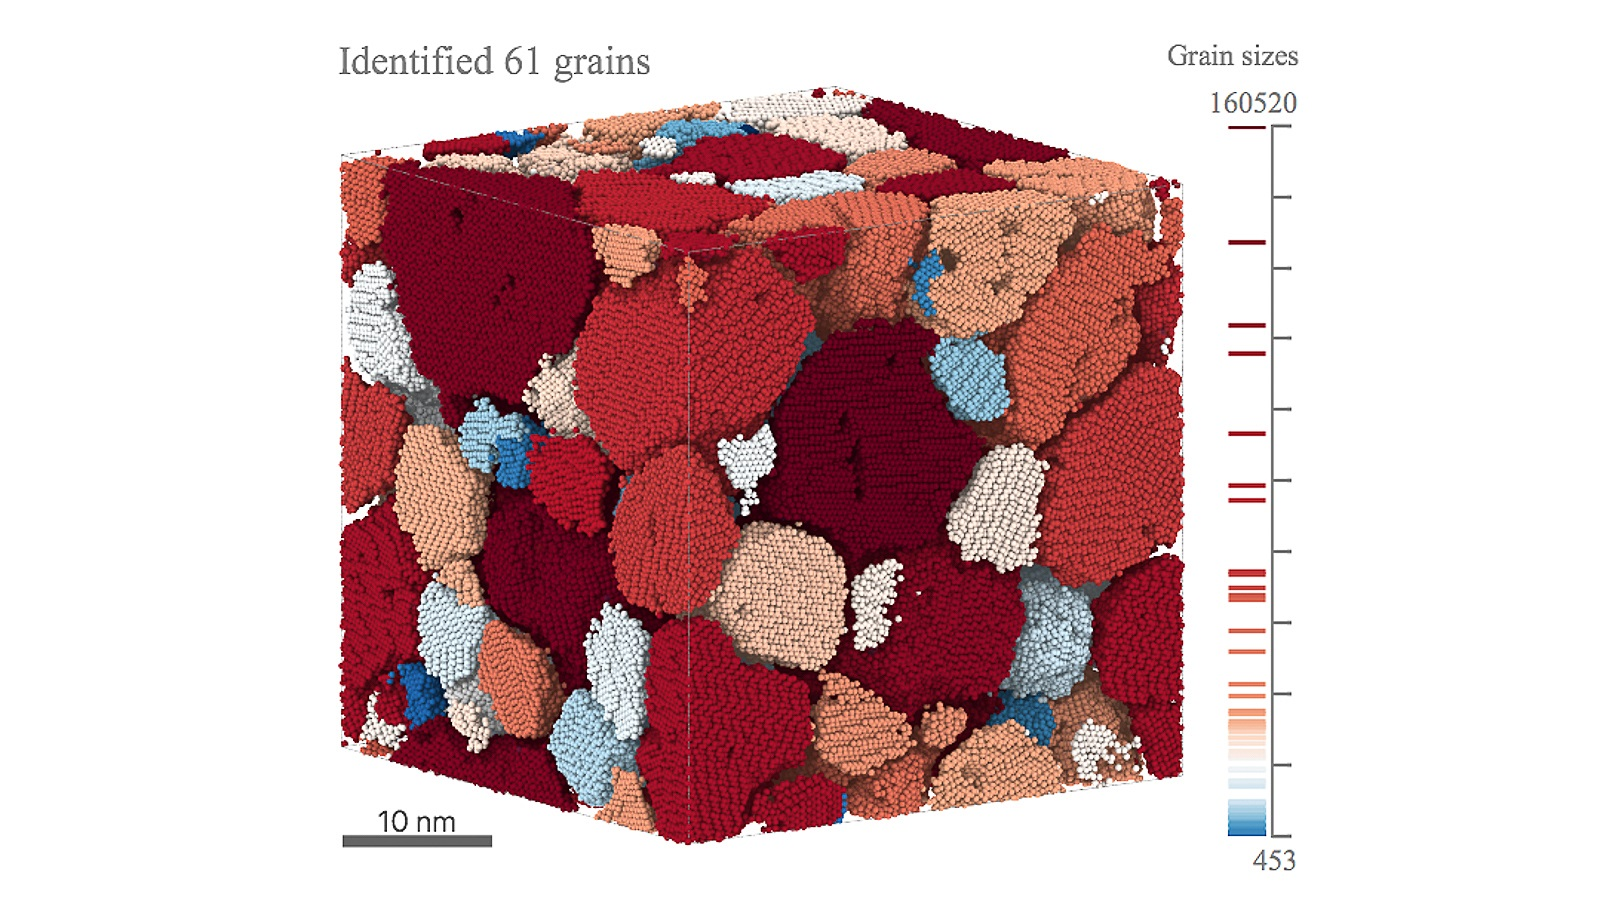 Machine-learning enabled characterization of 3D microstructure showing grains of different sizes and their boundaries. (Image by Argonne National Laboratory.)